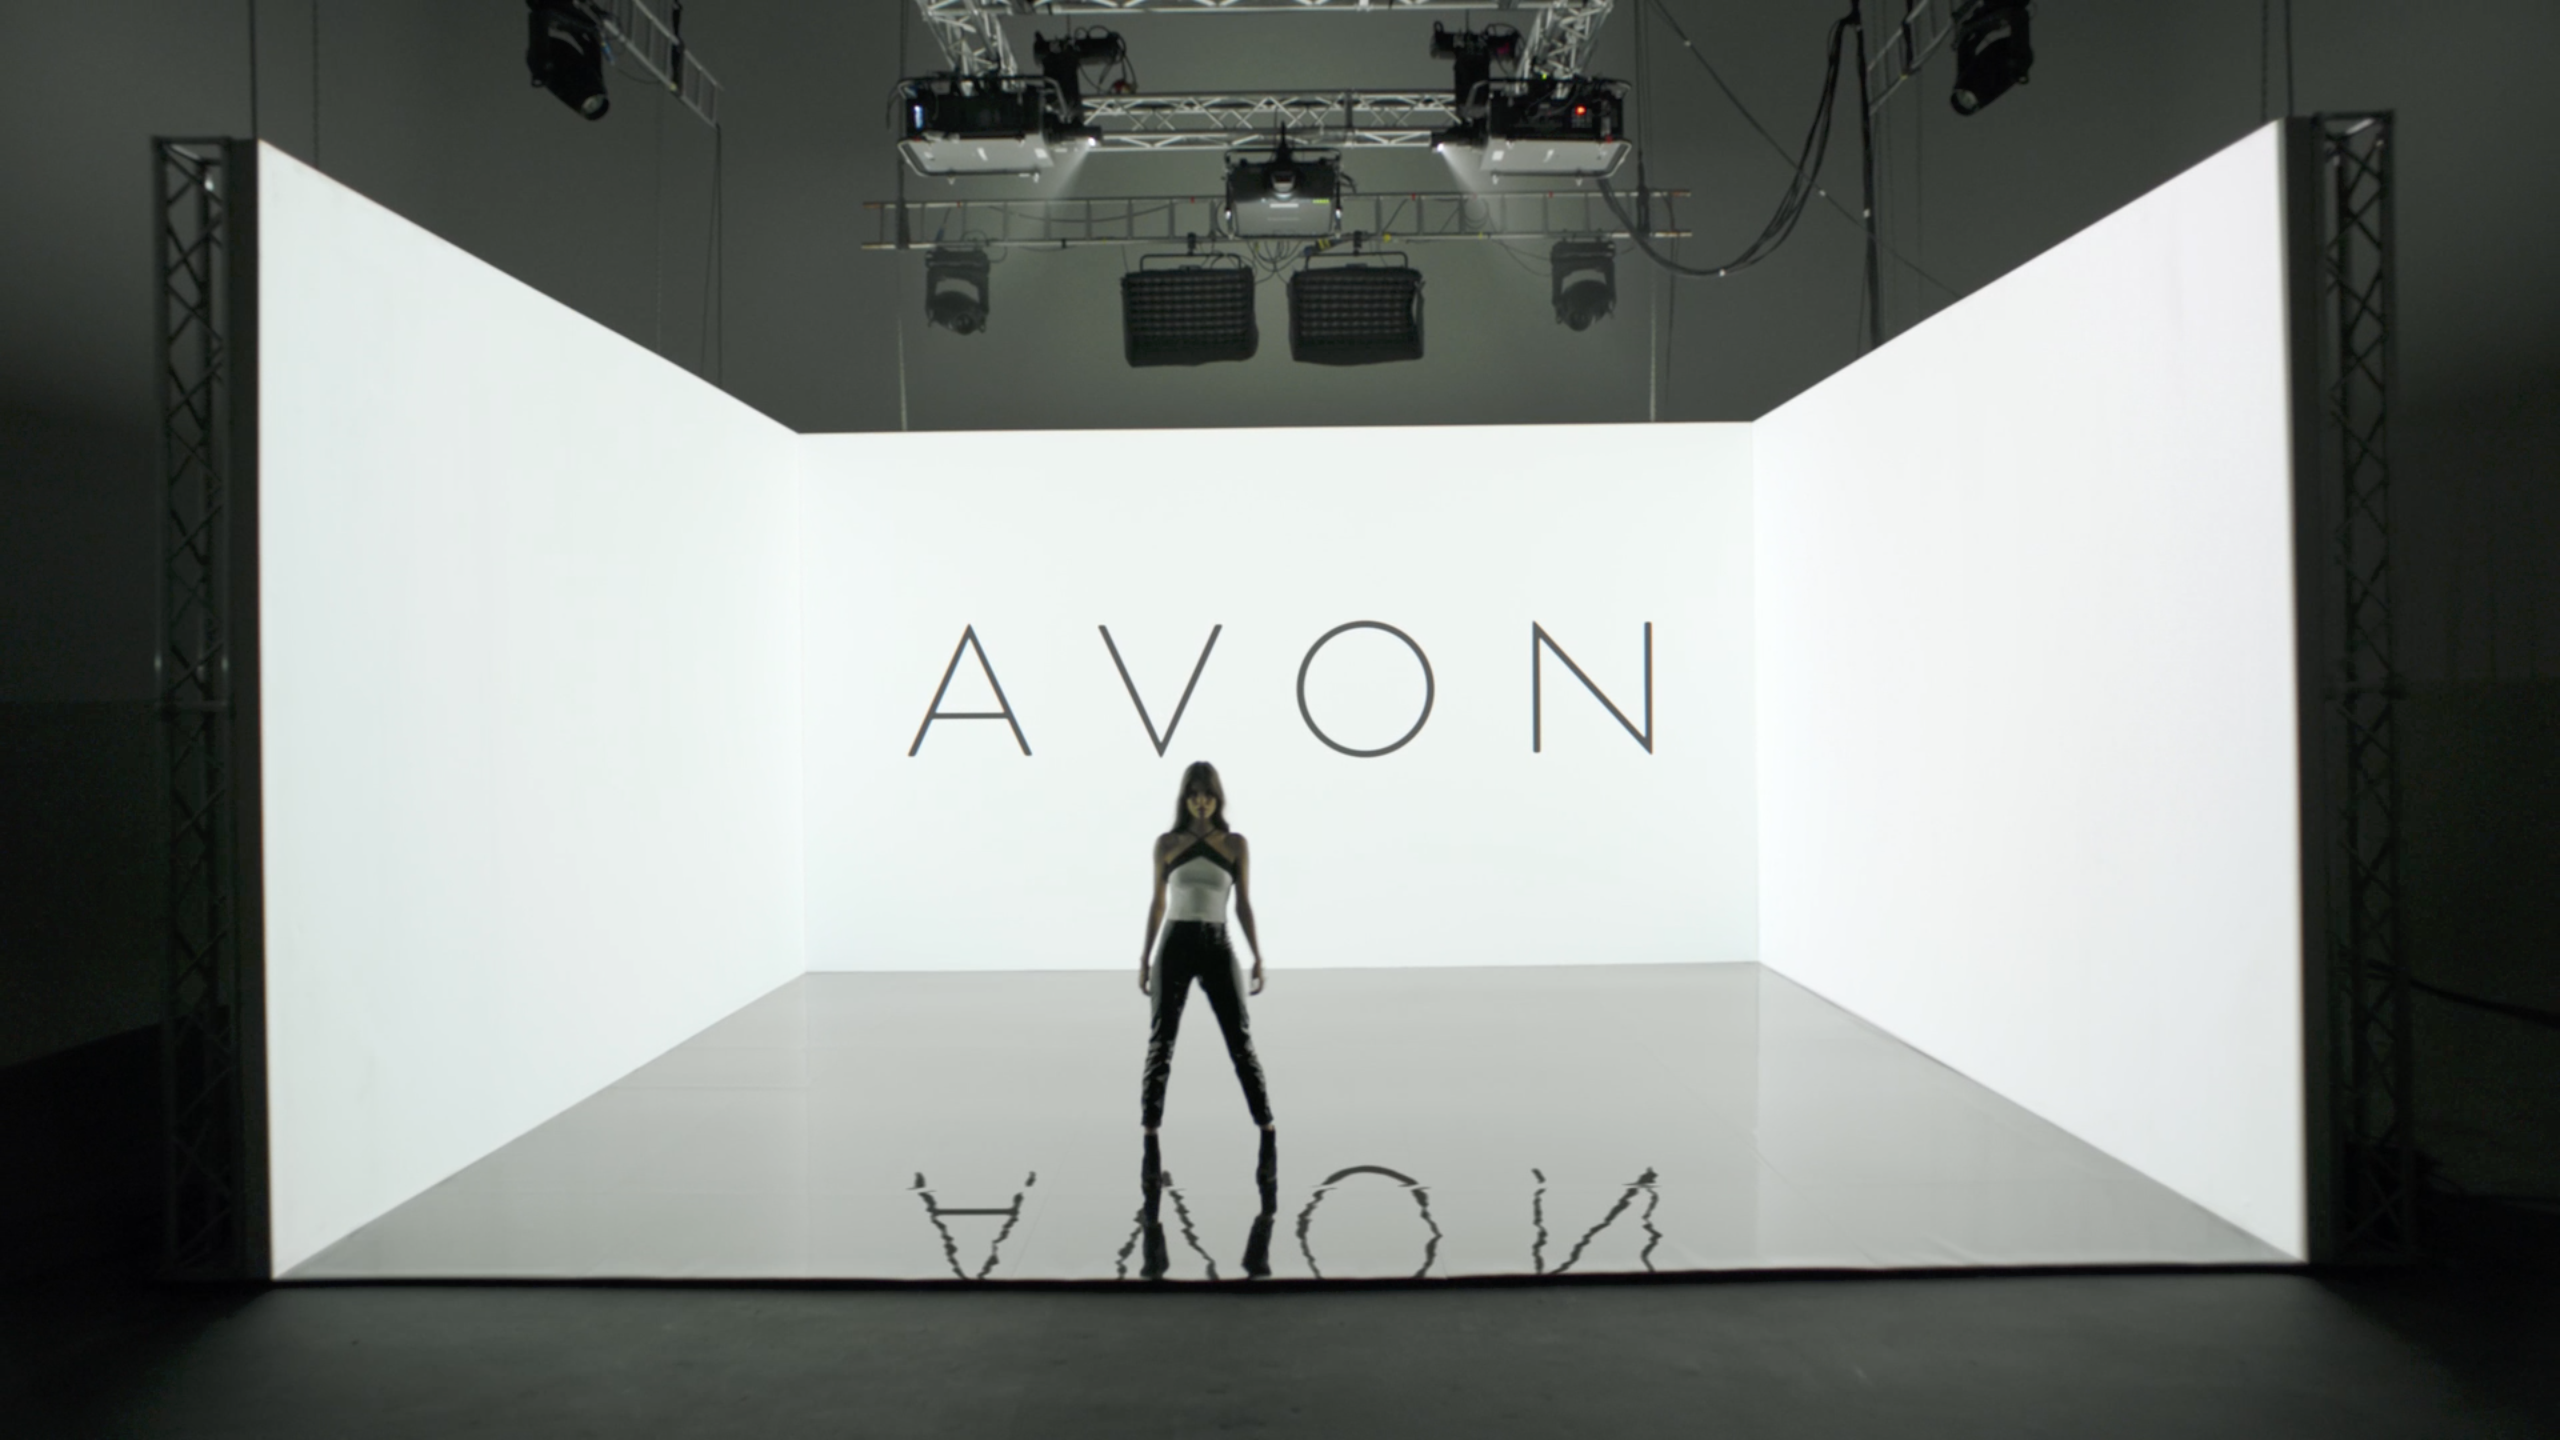 Event Projection: Avon Commercial with immersive projection